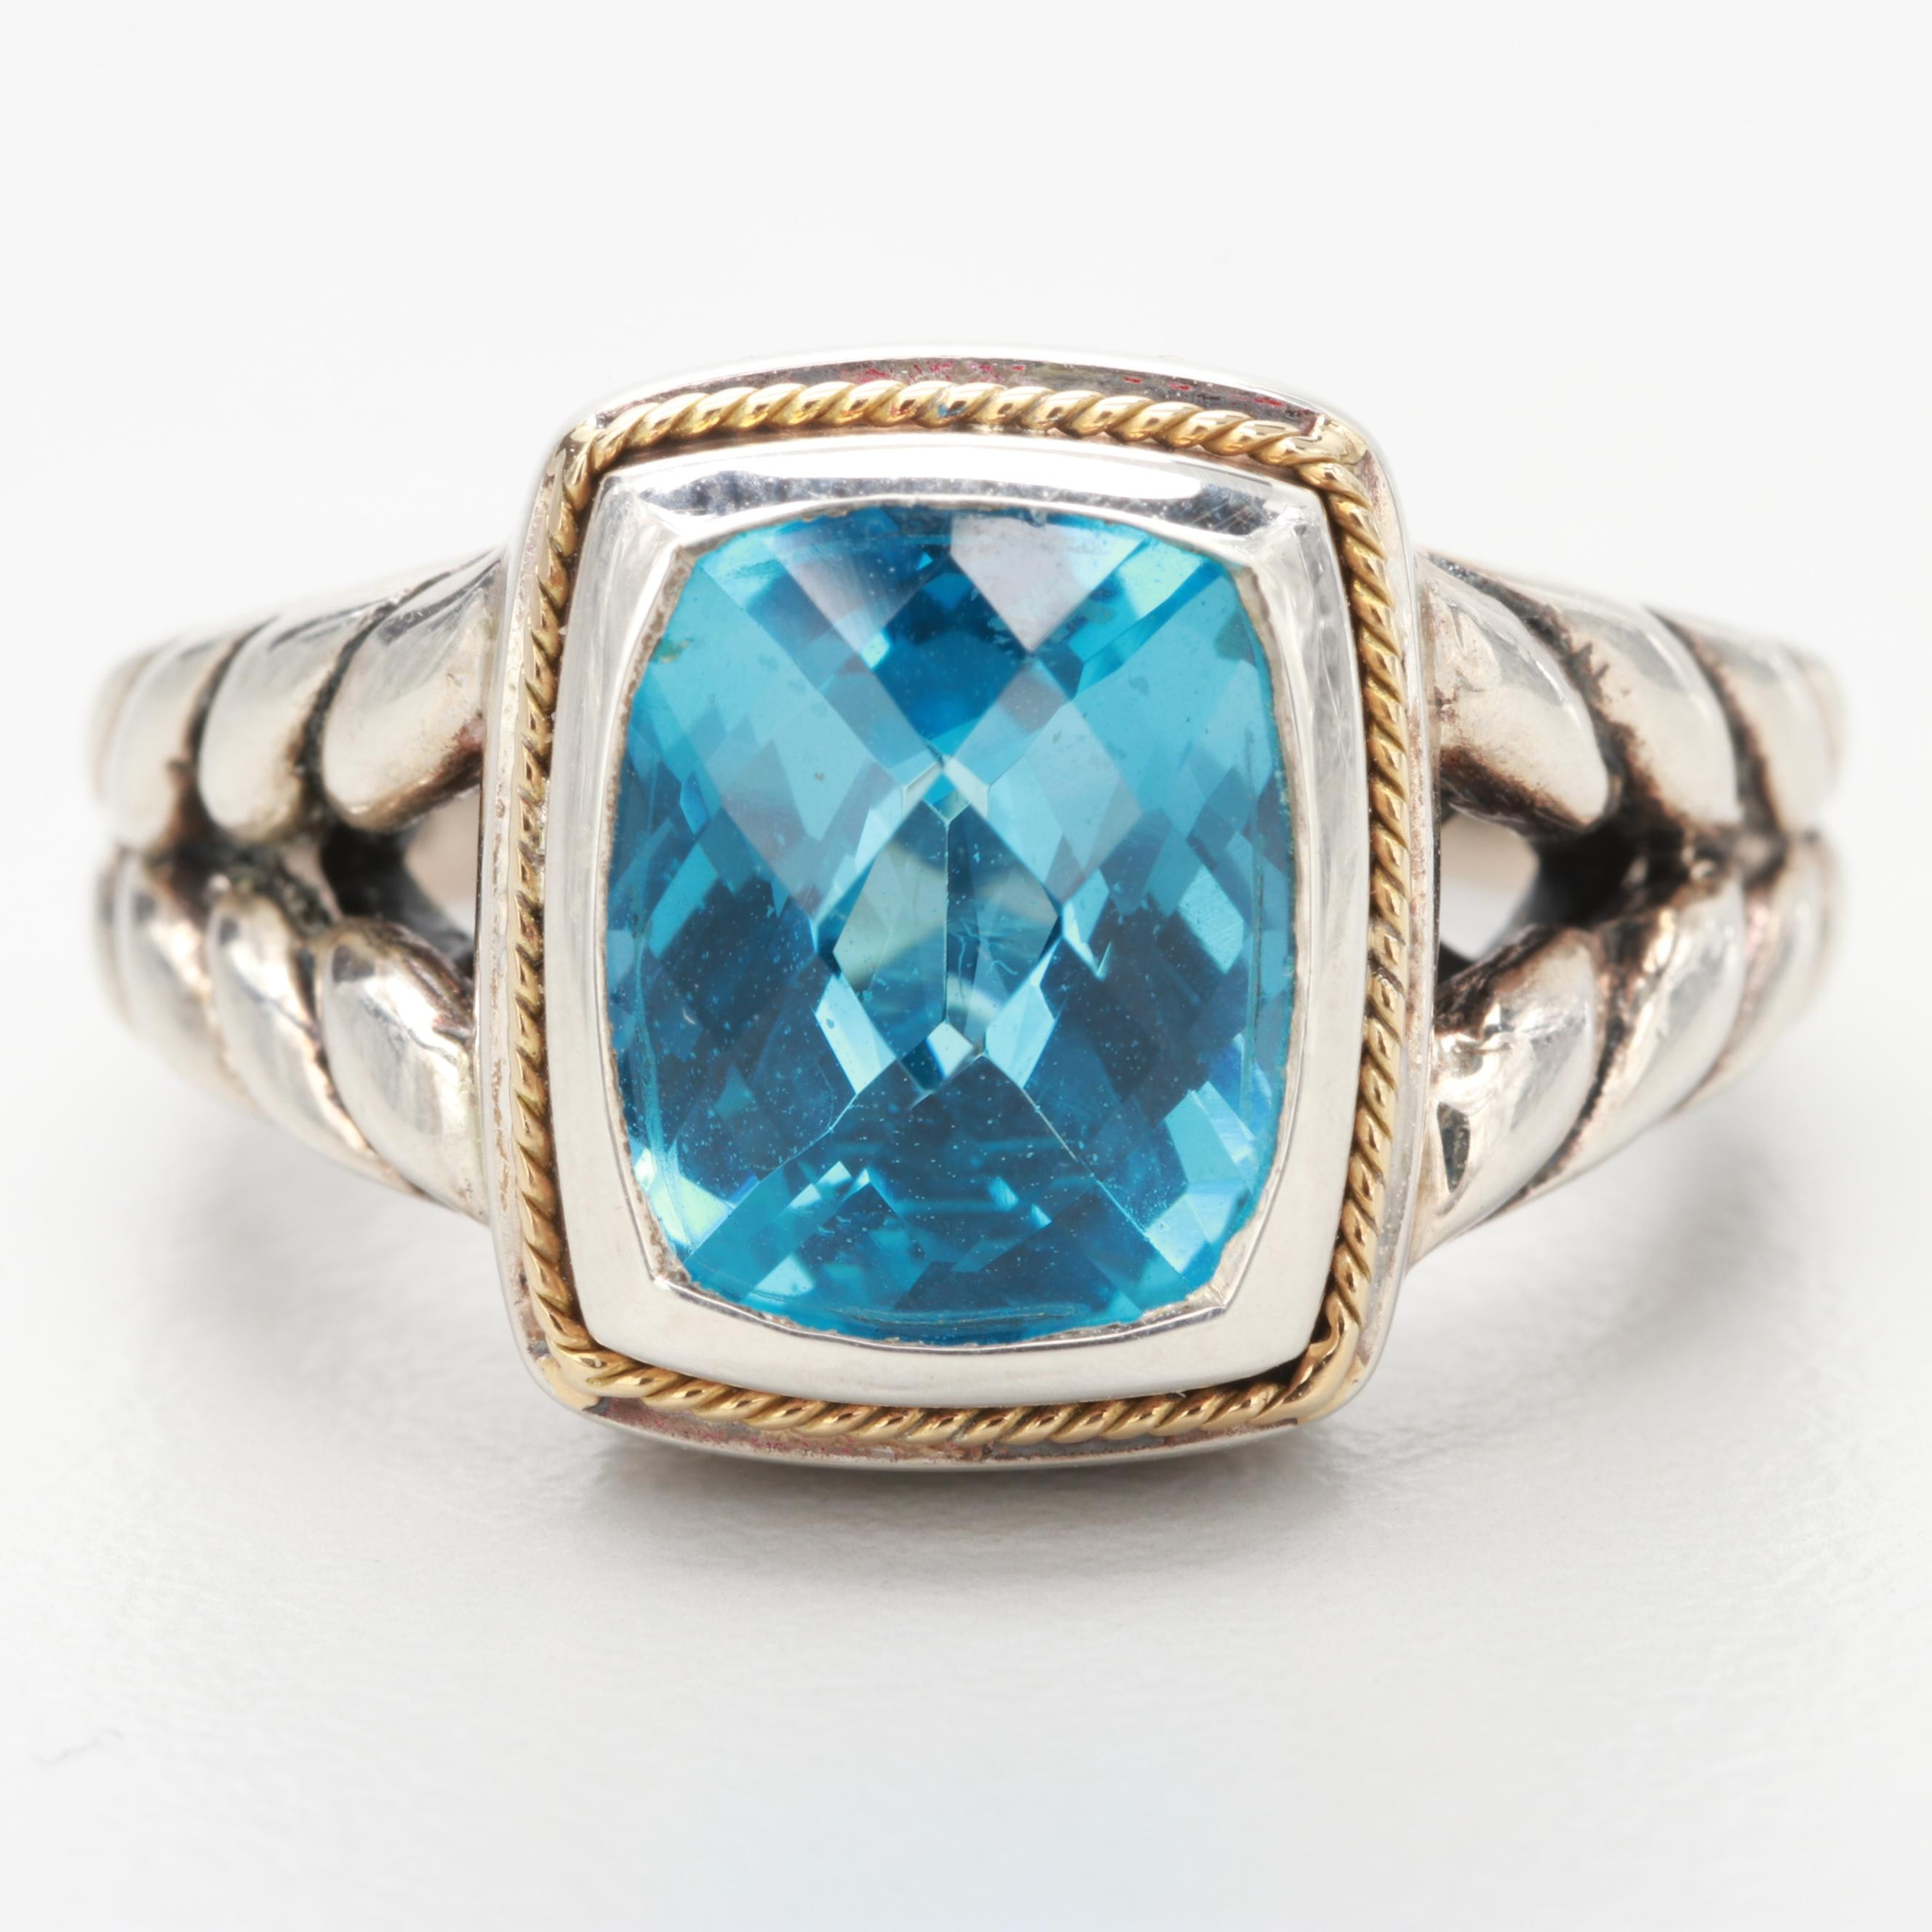 Effy Sterling Silver Blue Topaz Gemstone Ring with 18K Yellow Gold Accents